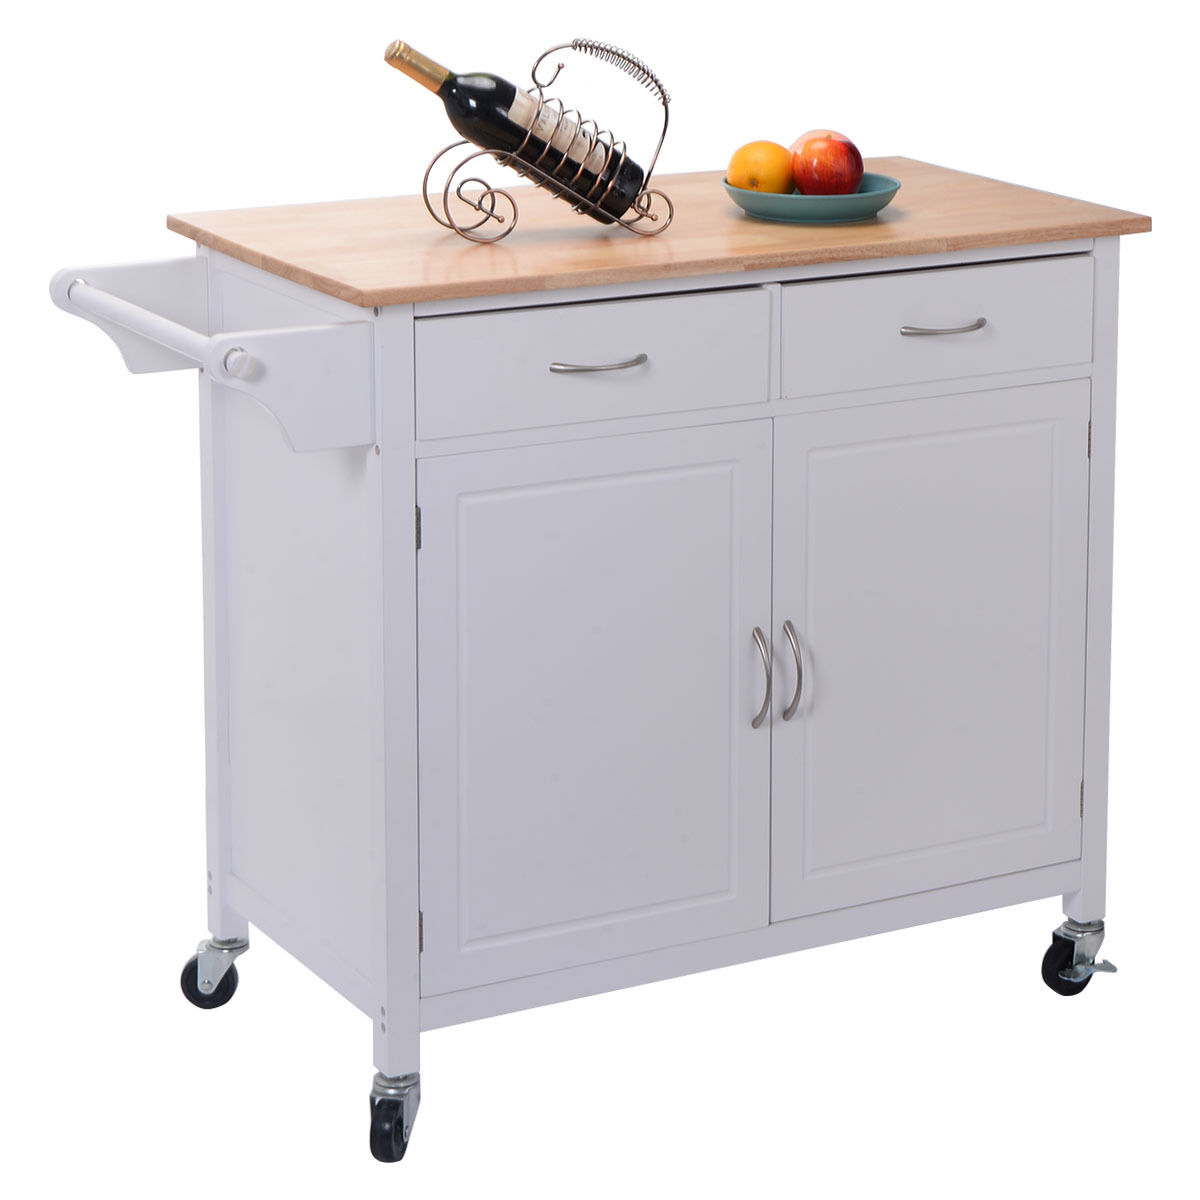 Kitchen Islands \u0026 Carts - Walmart.com